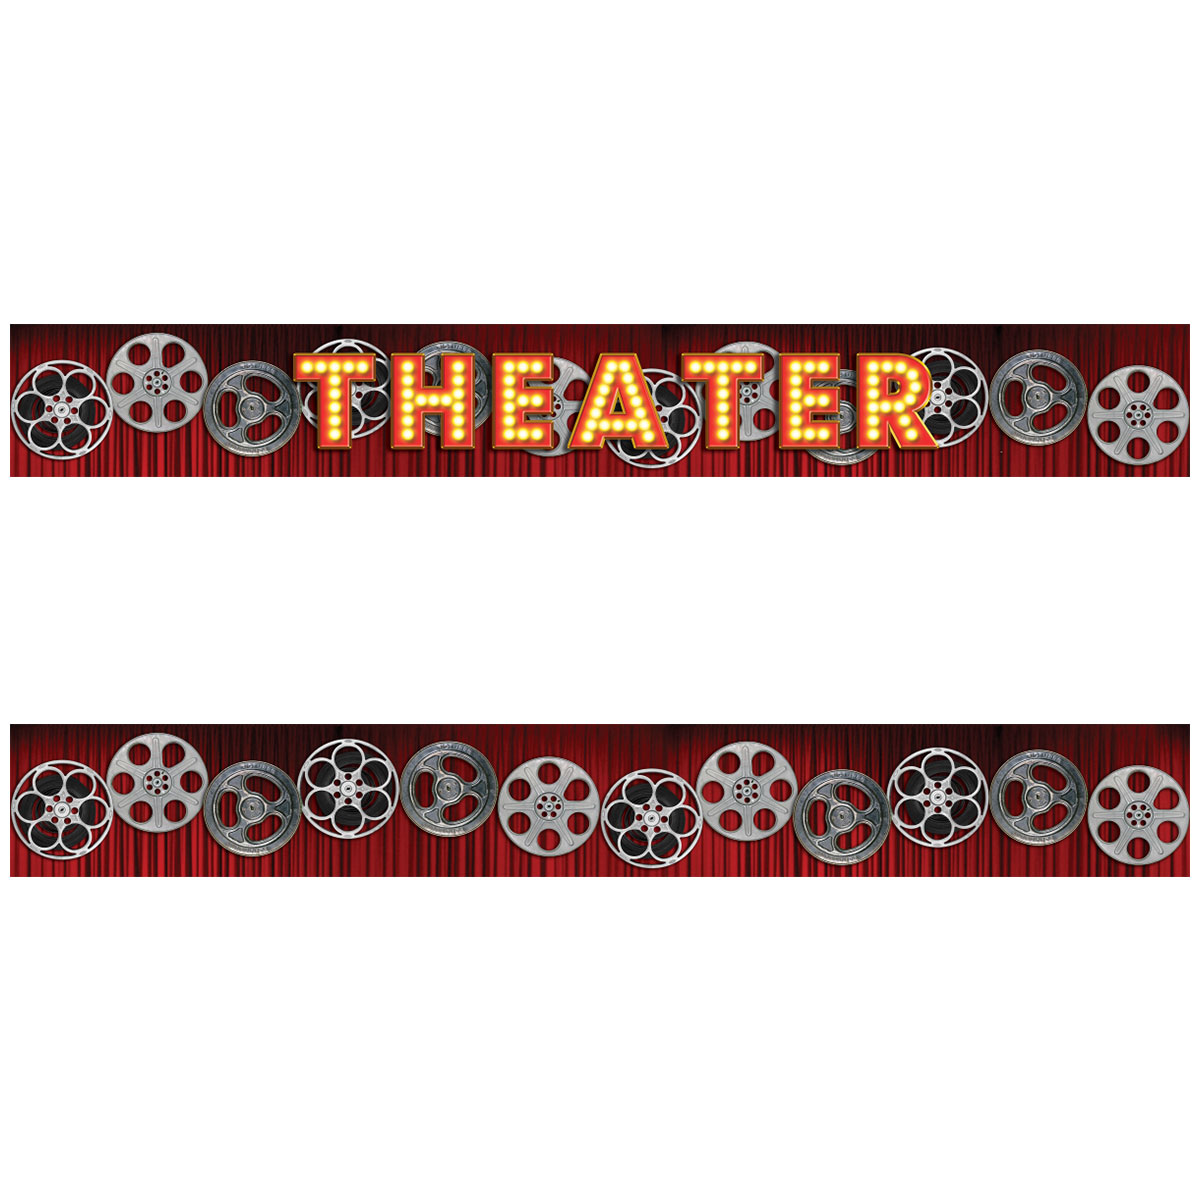 Theater Curtain Film Reels Wall Decal Border Movie Room Decor - Vinyl wall decals borders